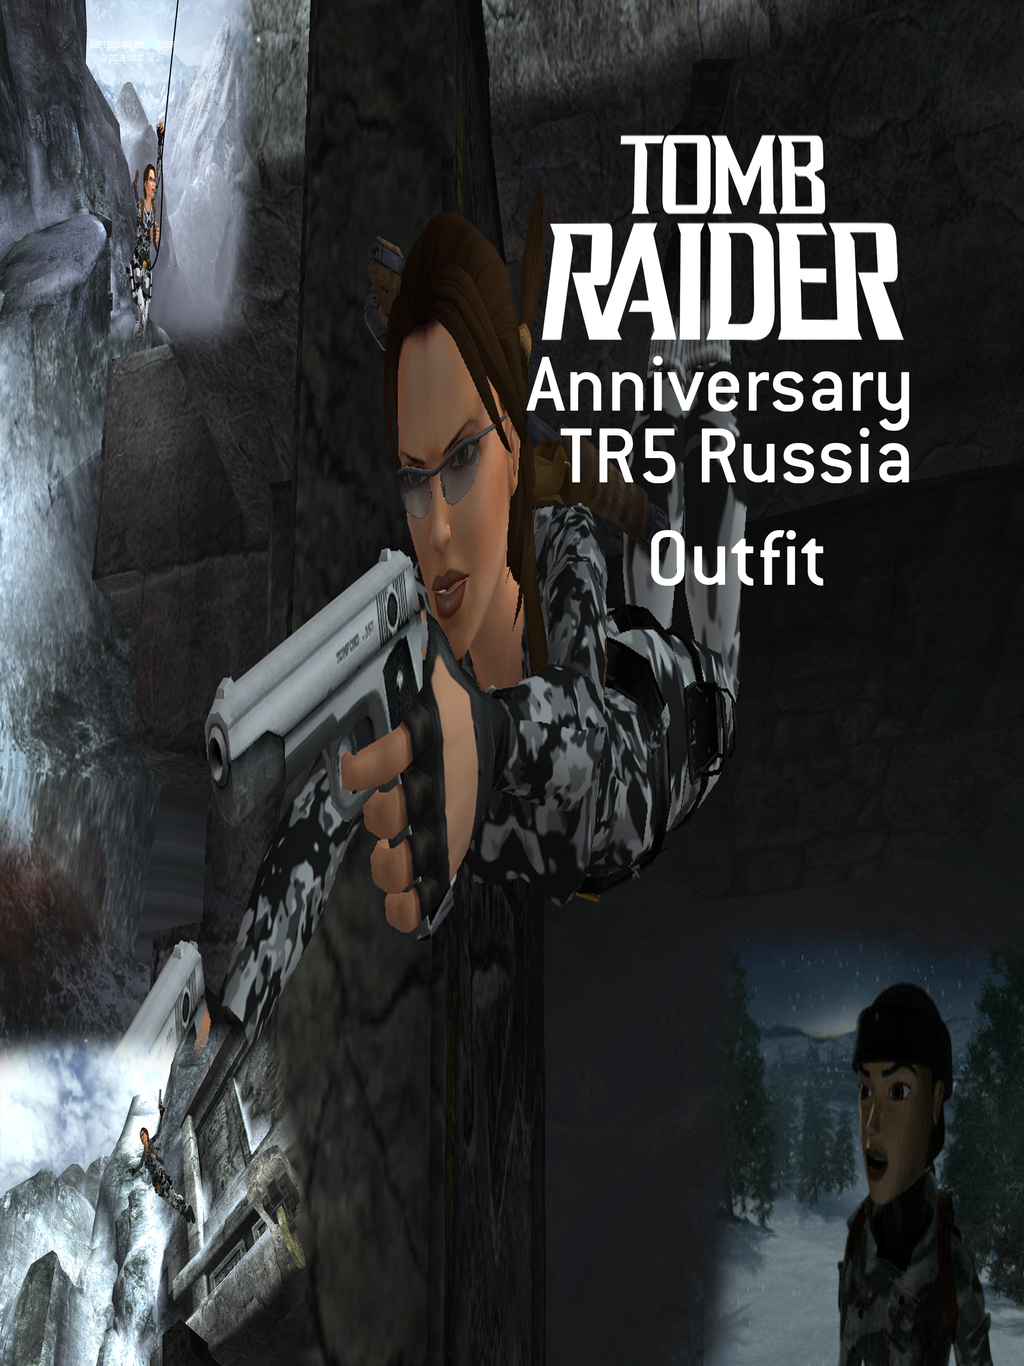 Tomb raider 2023 outfits sex scene